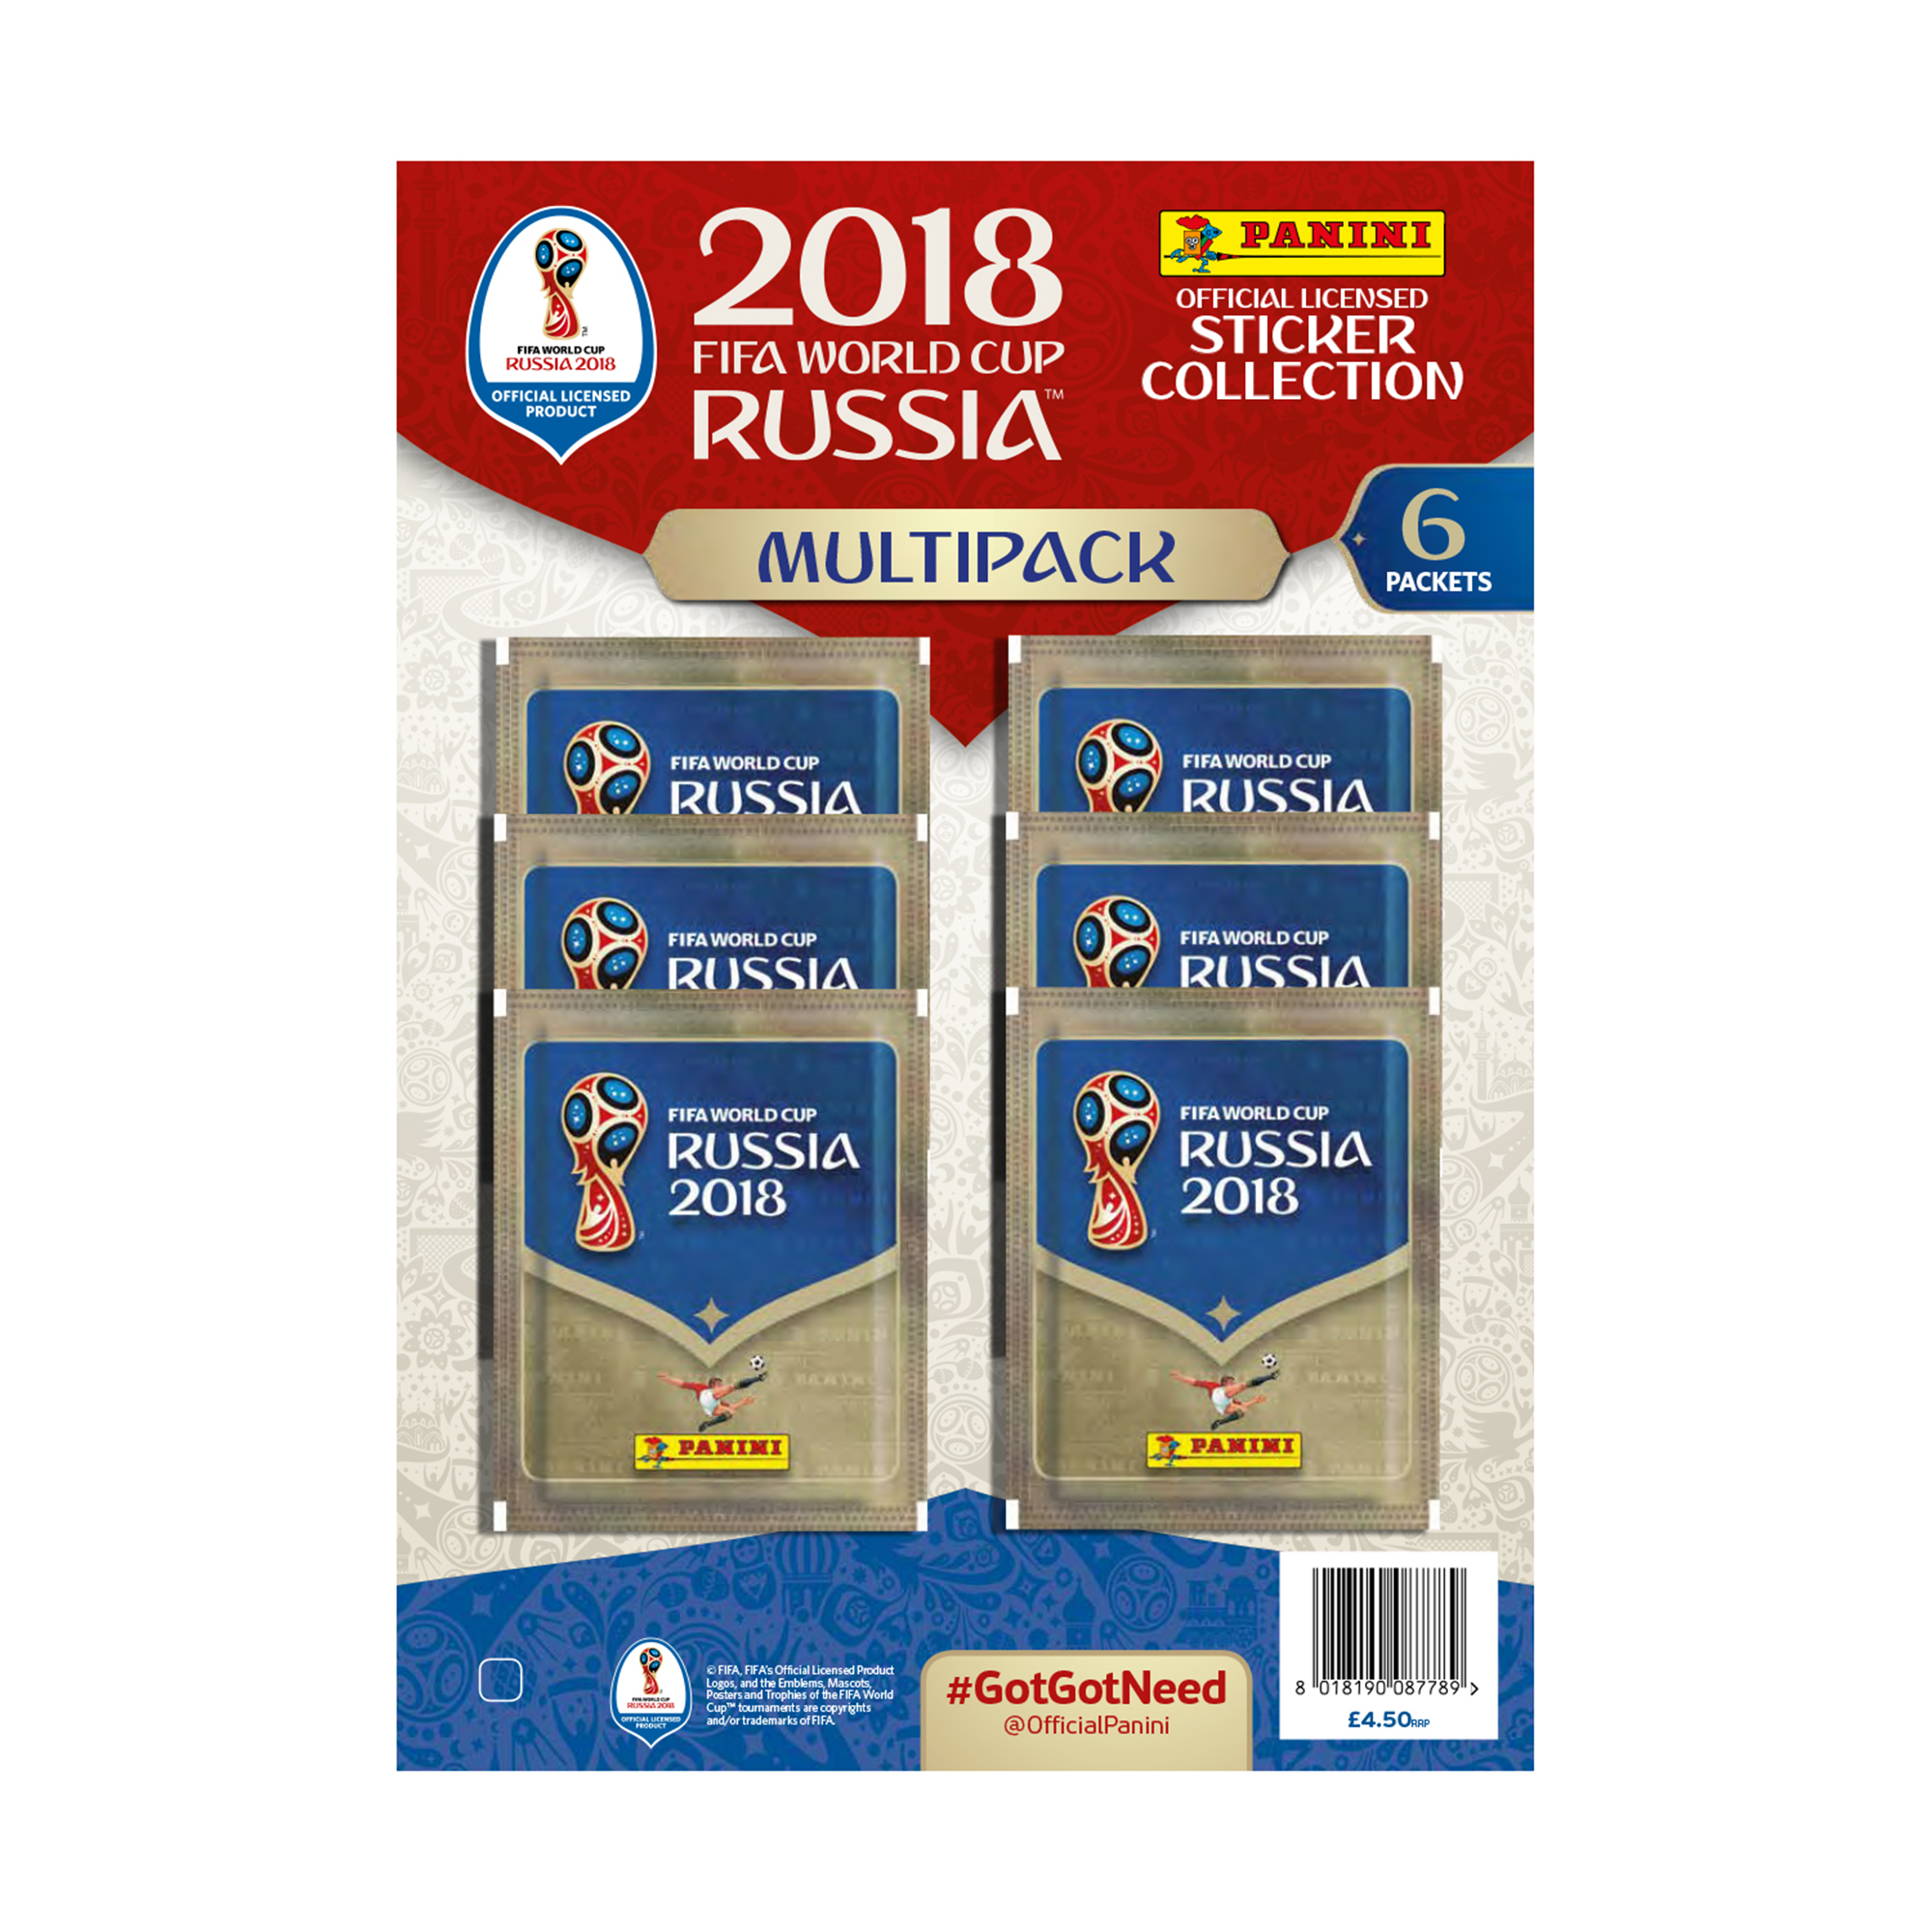 FIFA World Cup Russia 2018 Sticker Collection Multipack